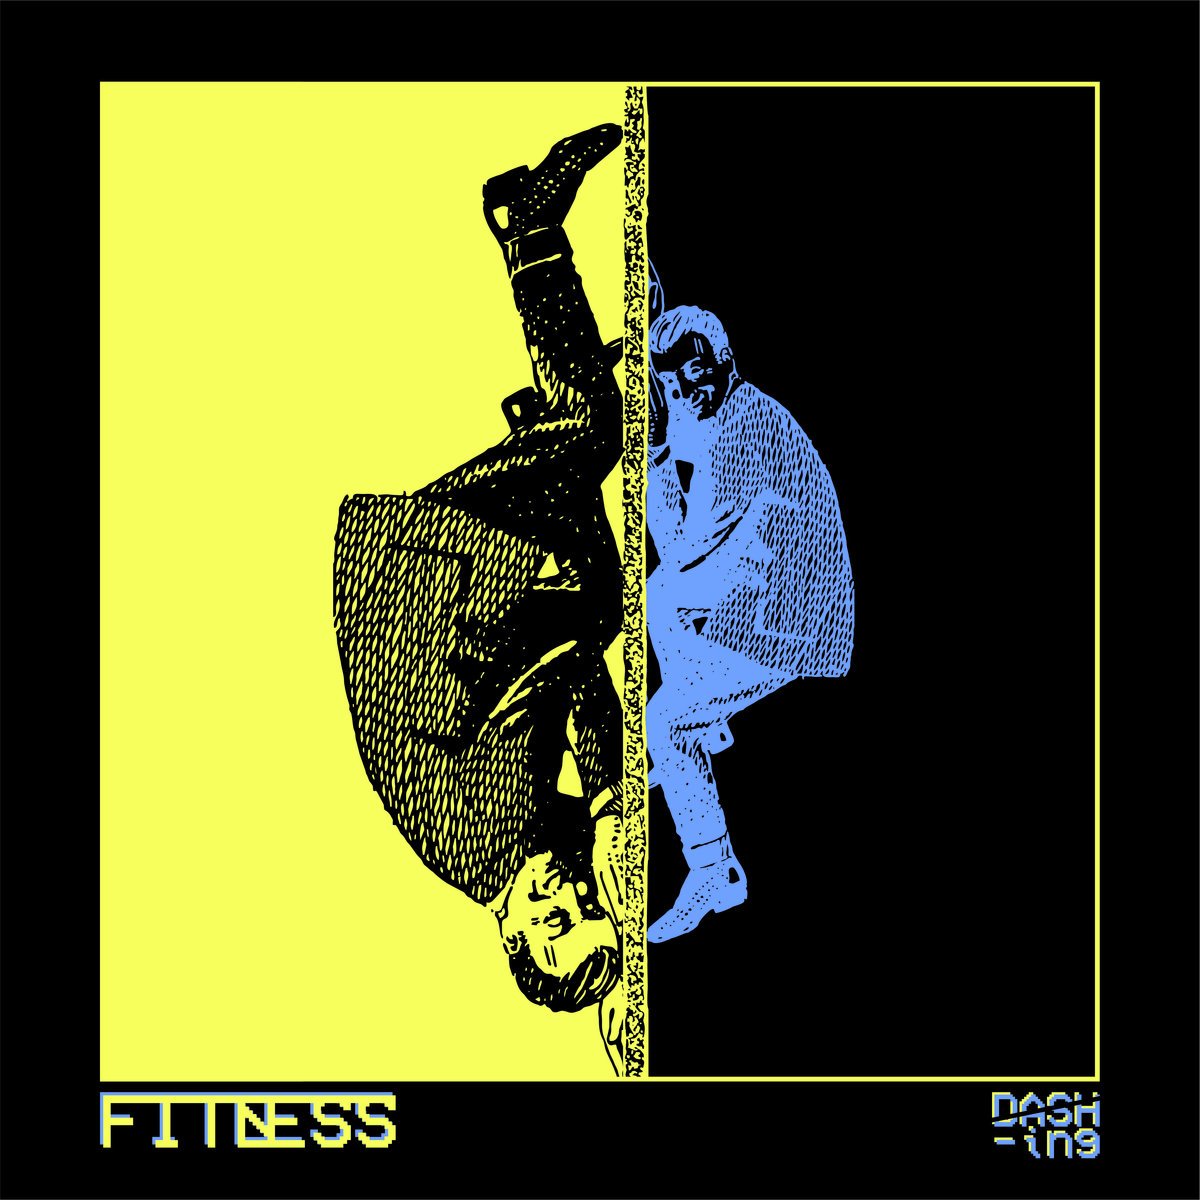 Fitness - Dashing  Artwork by Helth